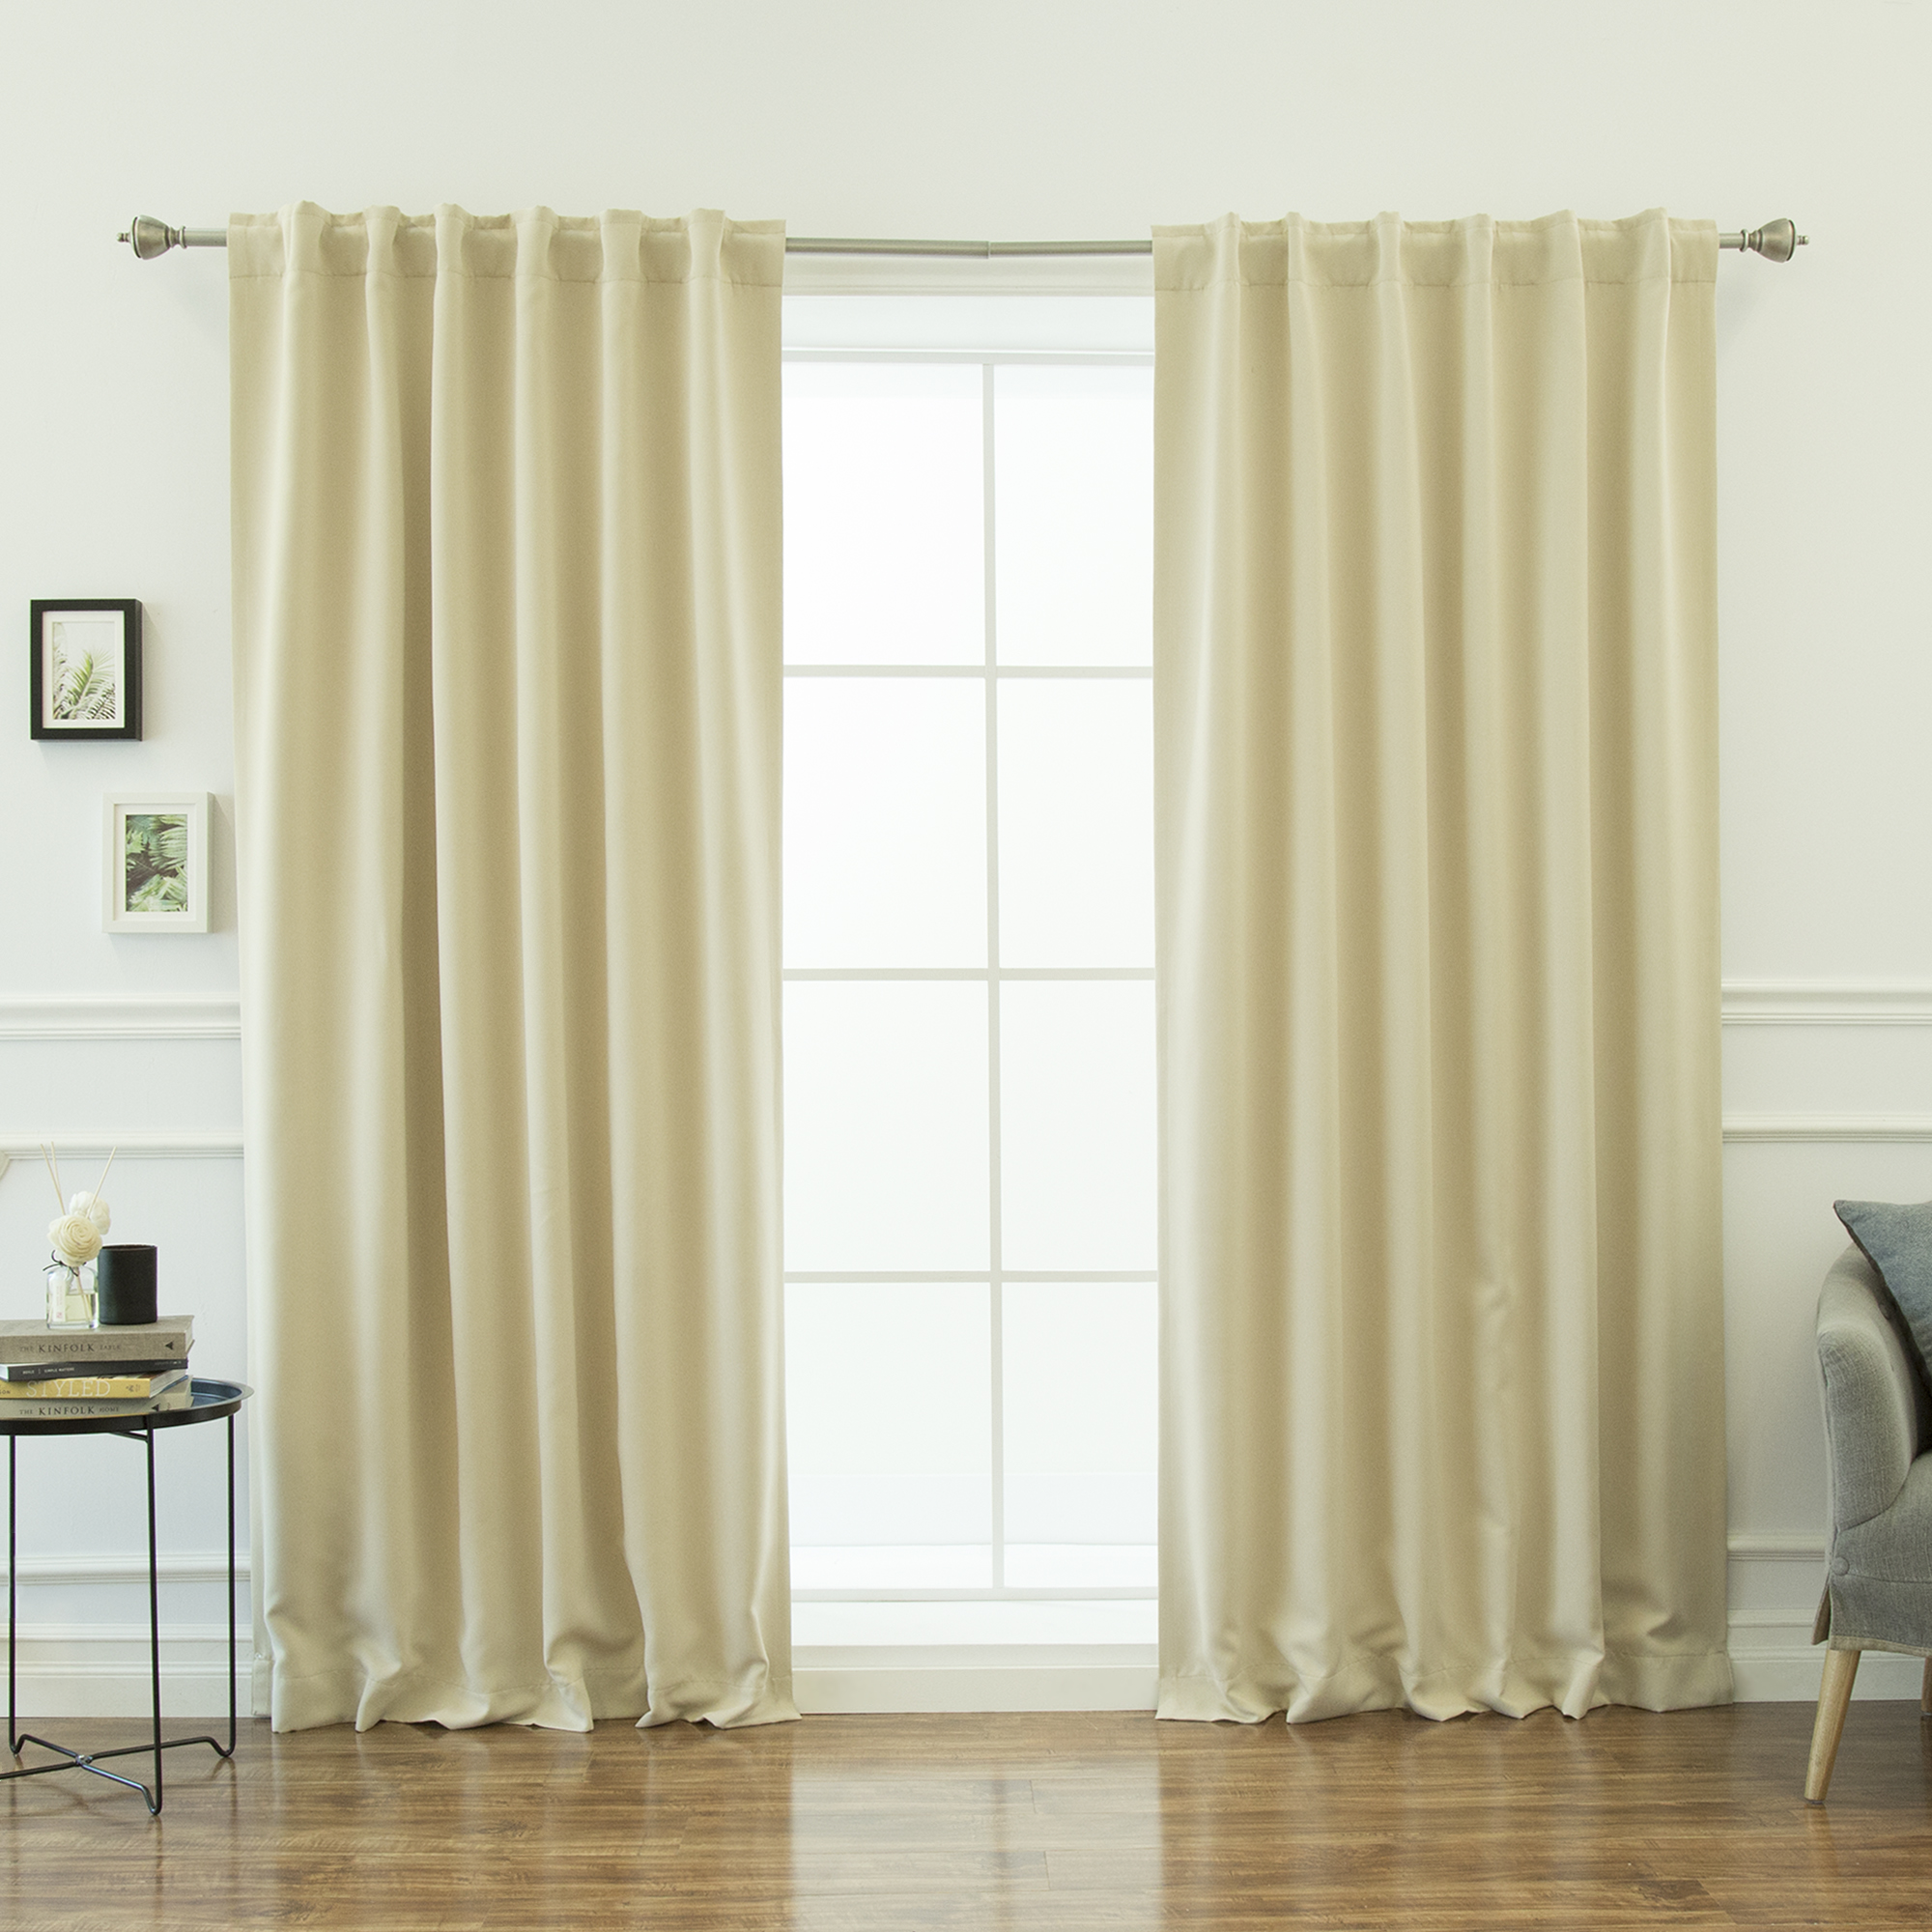 Quality Home Basic Thermal Blackout Curtains - Back Tab/Rod Pocket - Dark.Chocolate (Set of 2 Panels)